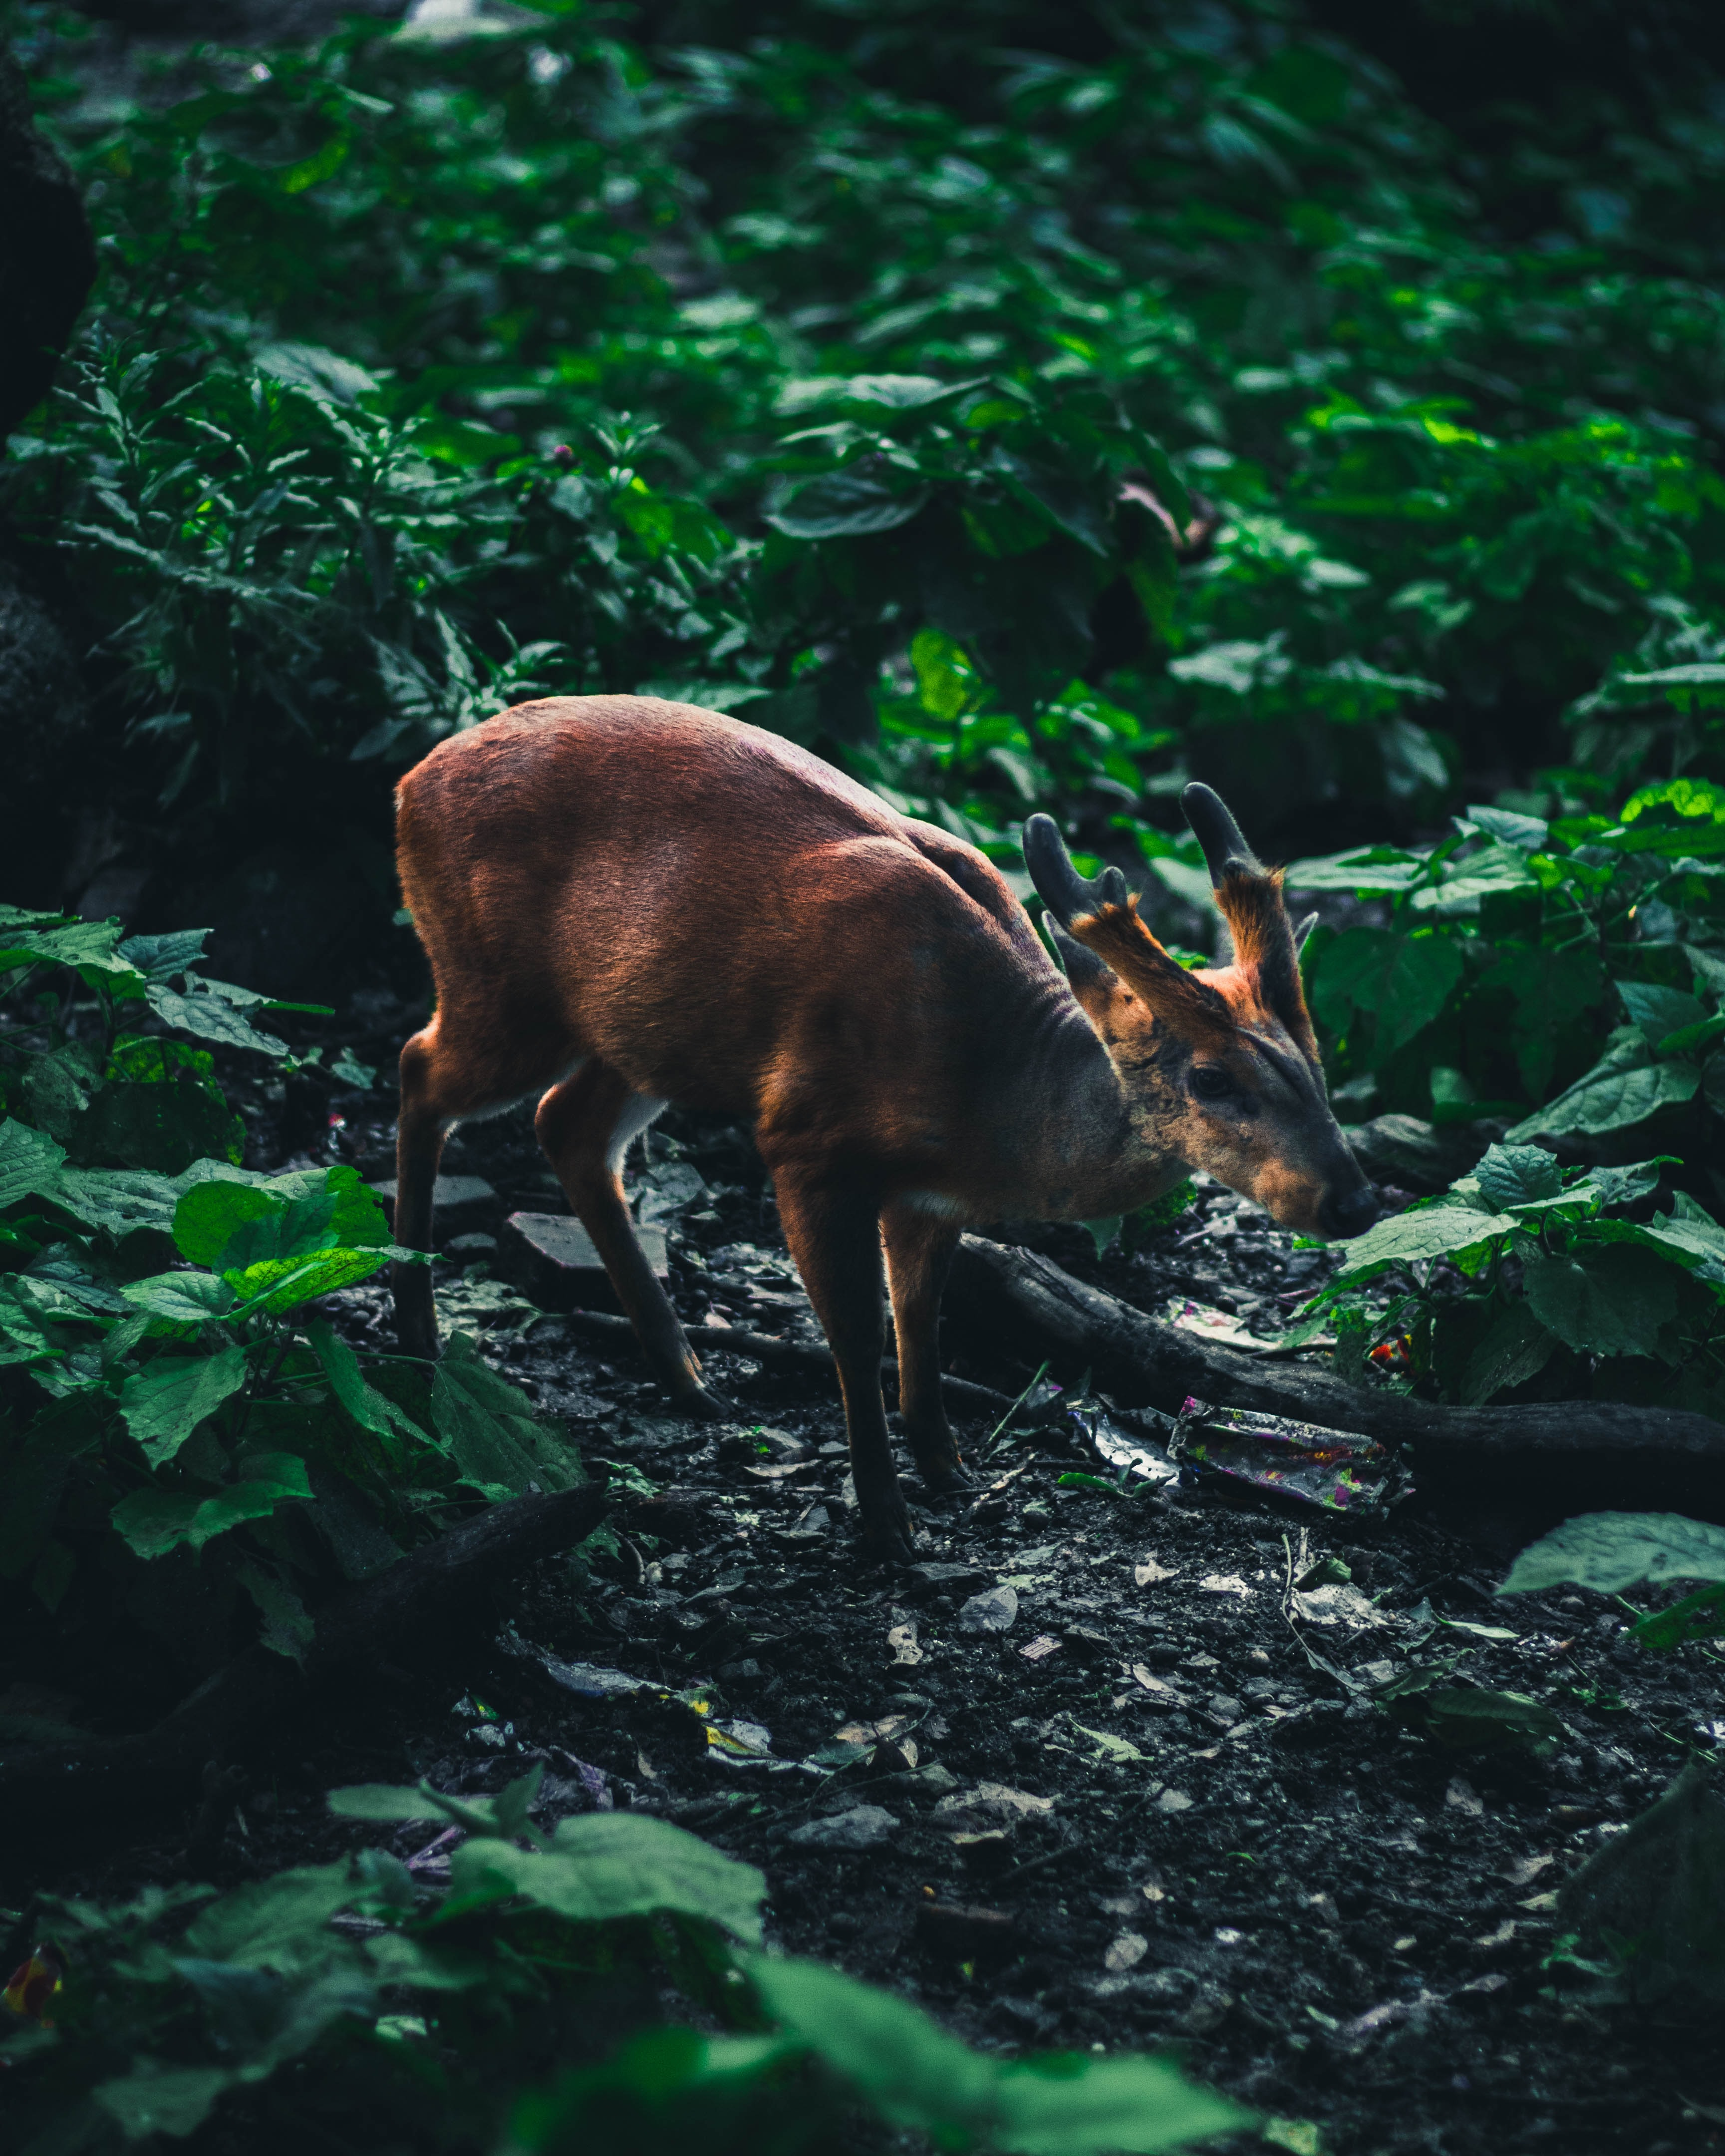 brown deer surrounded by green leafed plant